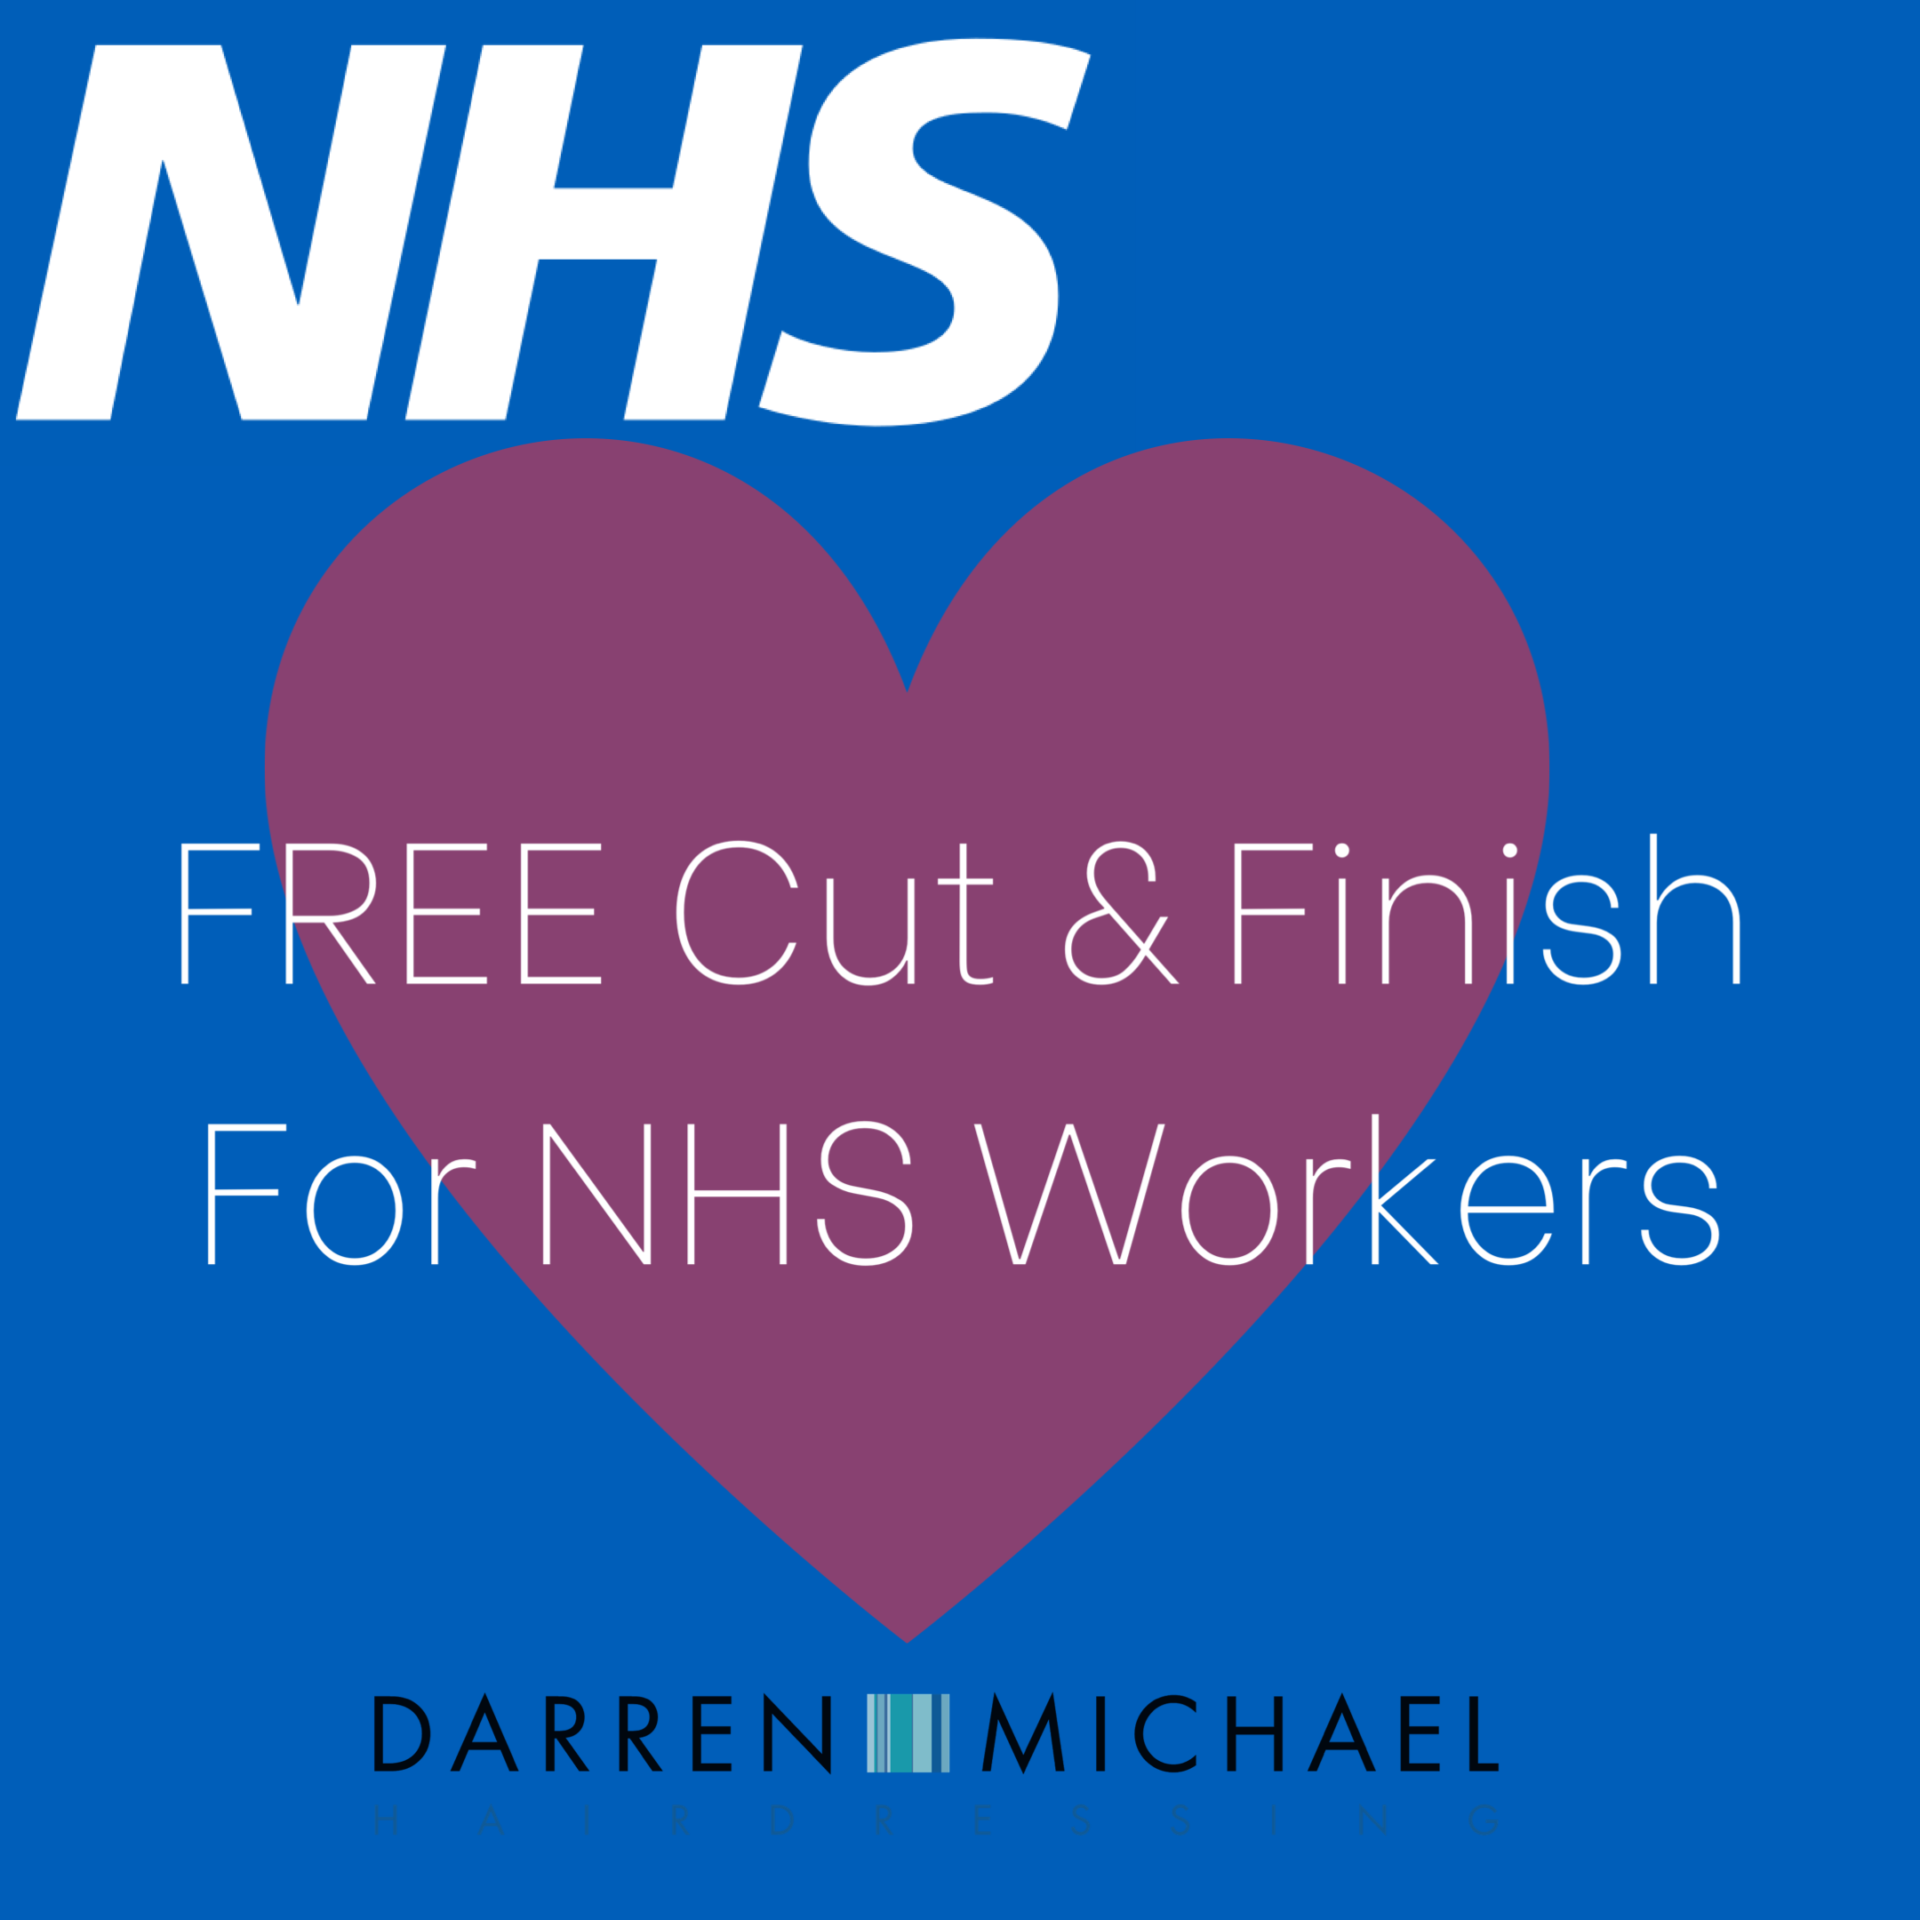 Free Cut & Style – NHS